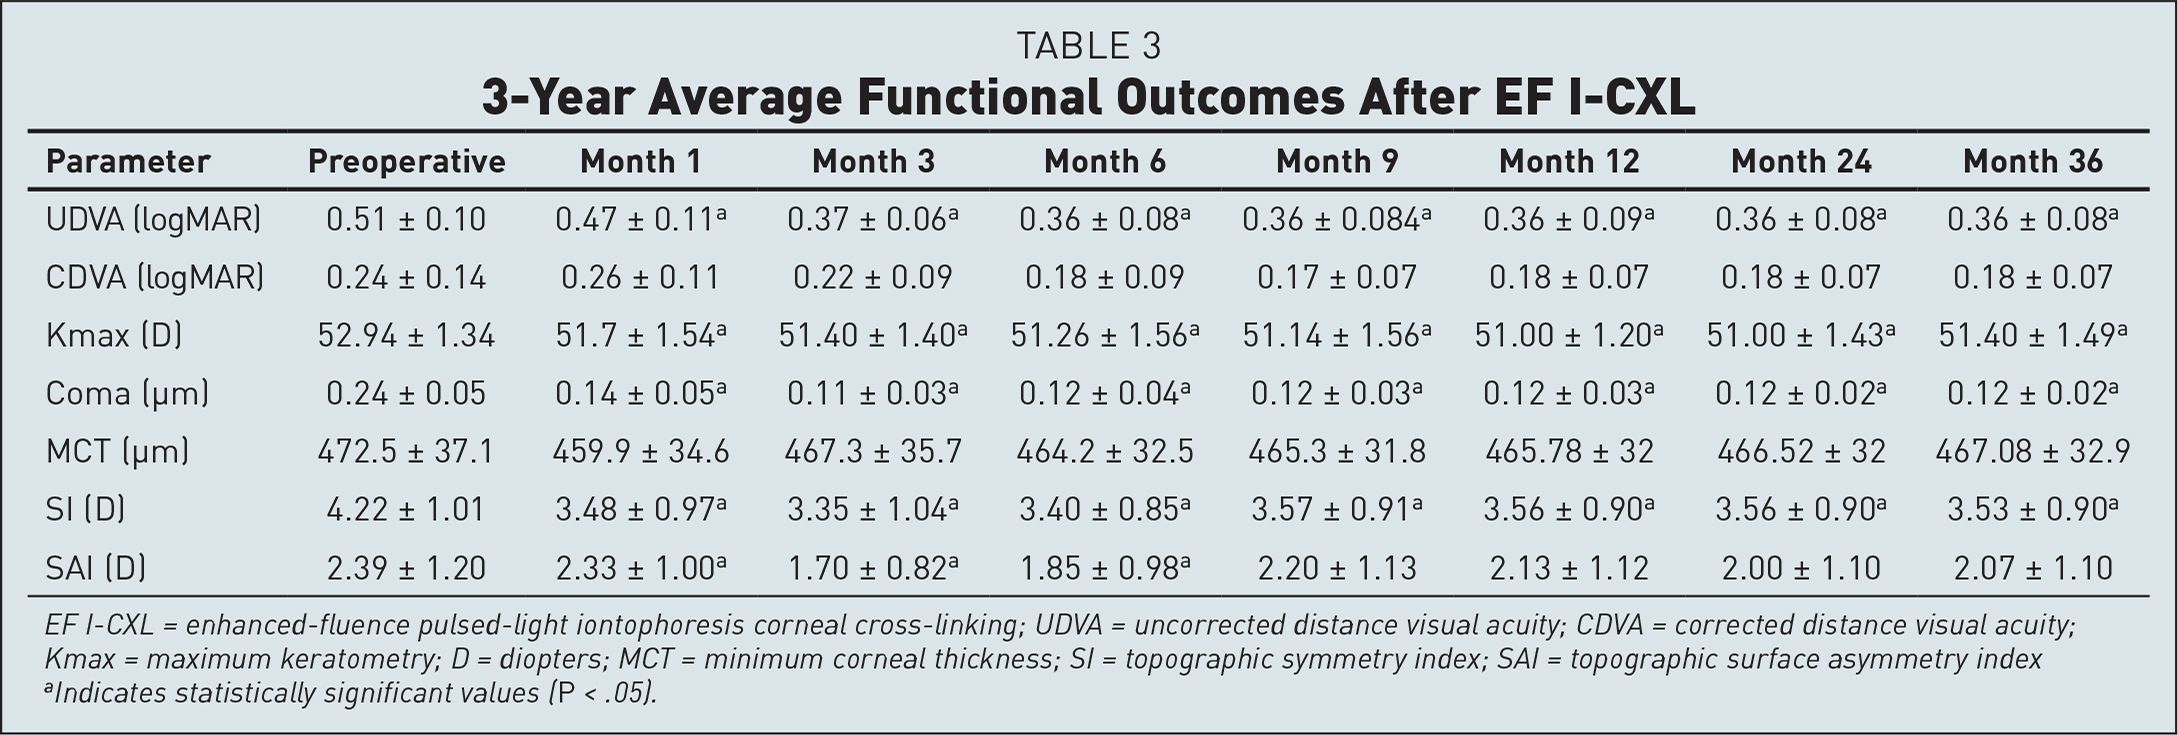 3-Year Average Functional Outcomes After EF I-CXL